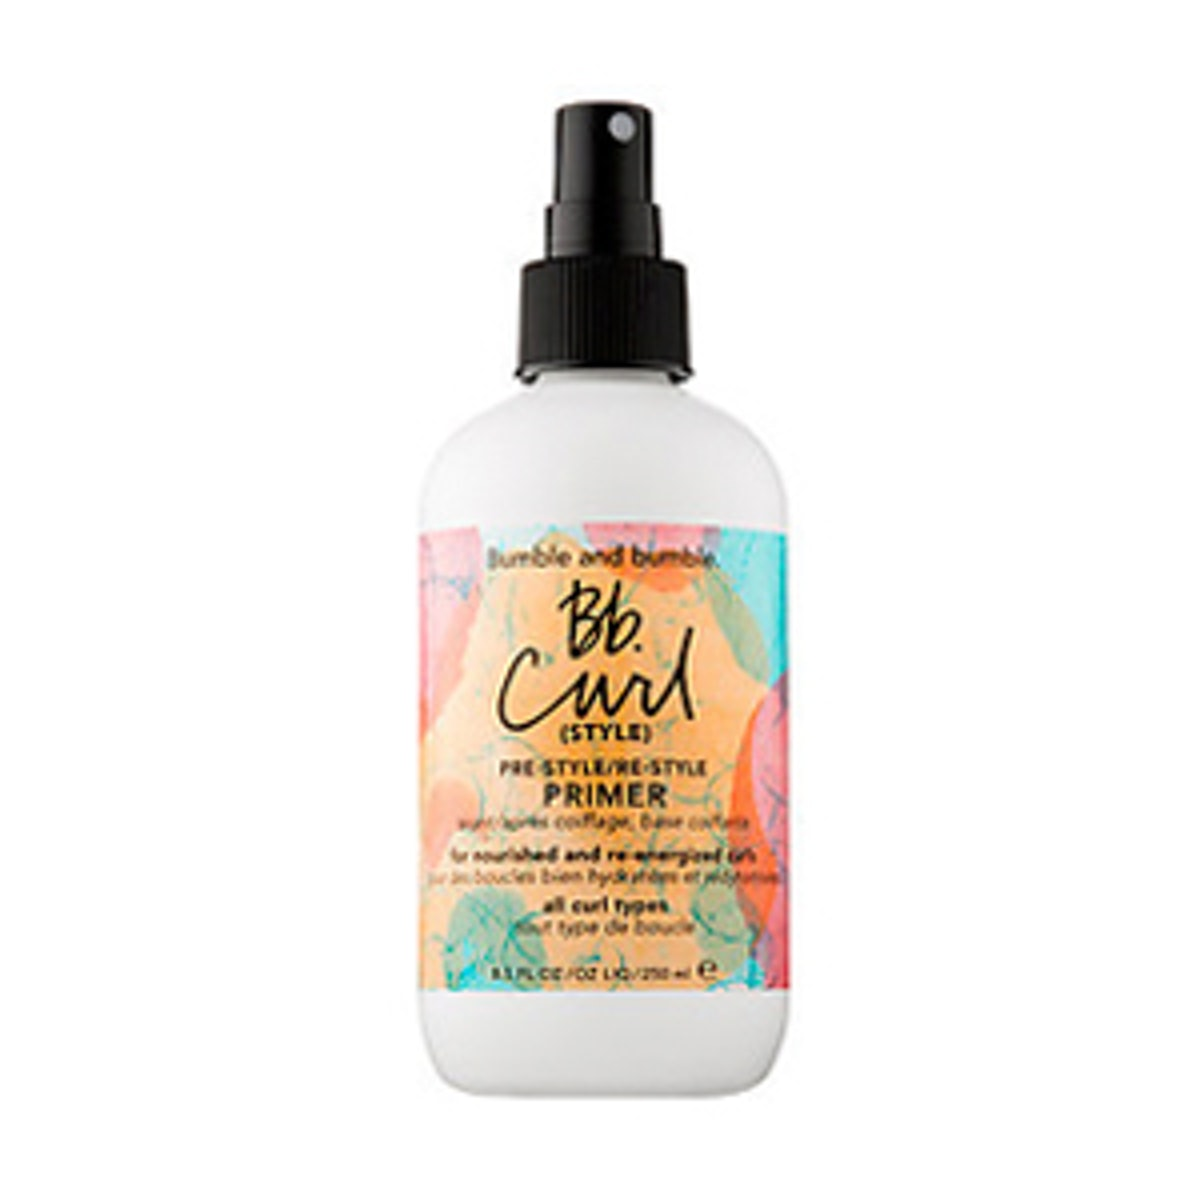 Bb.Curl Pre-Style/Re-Style Primer